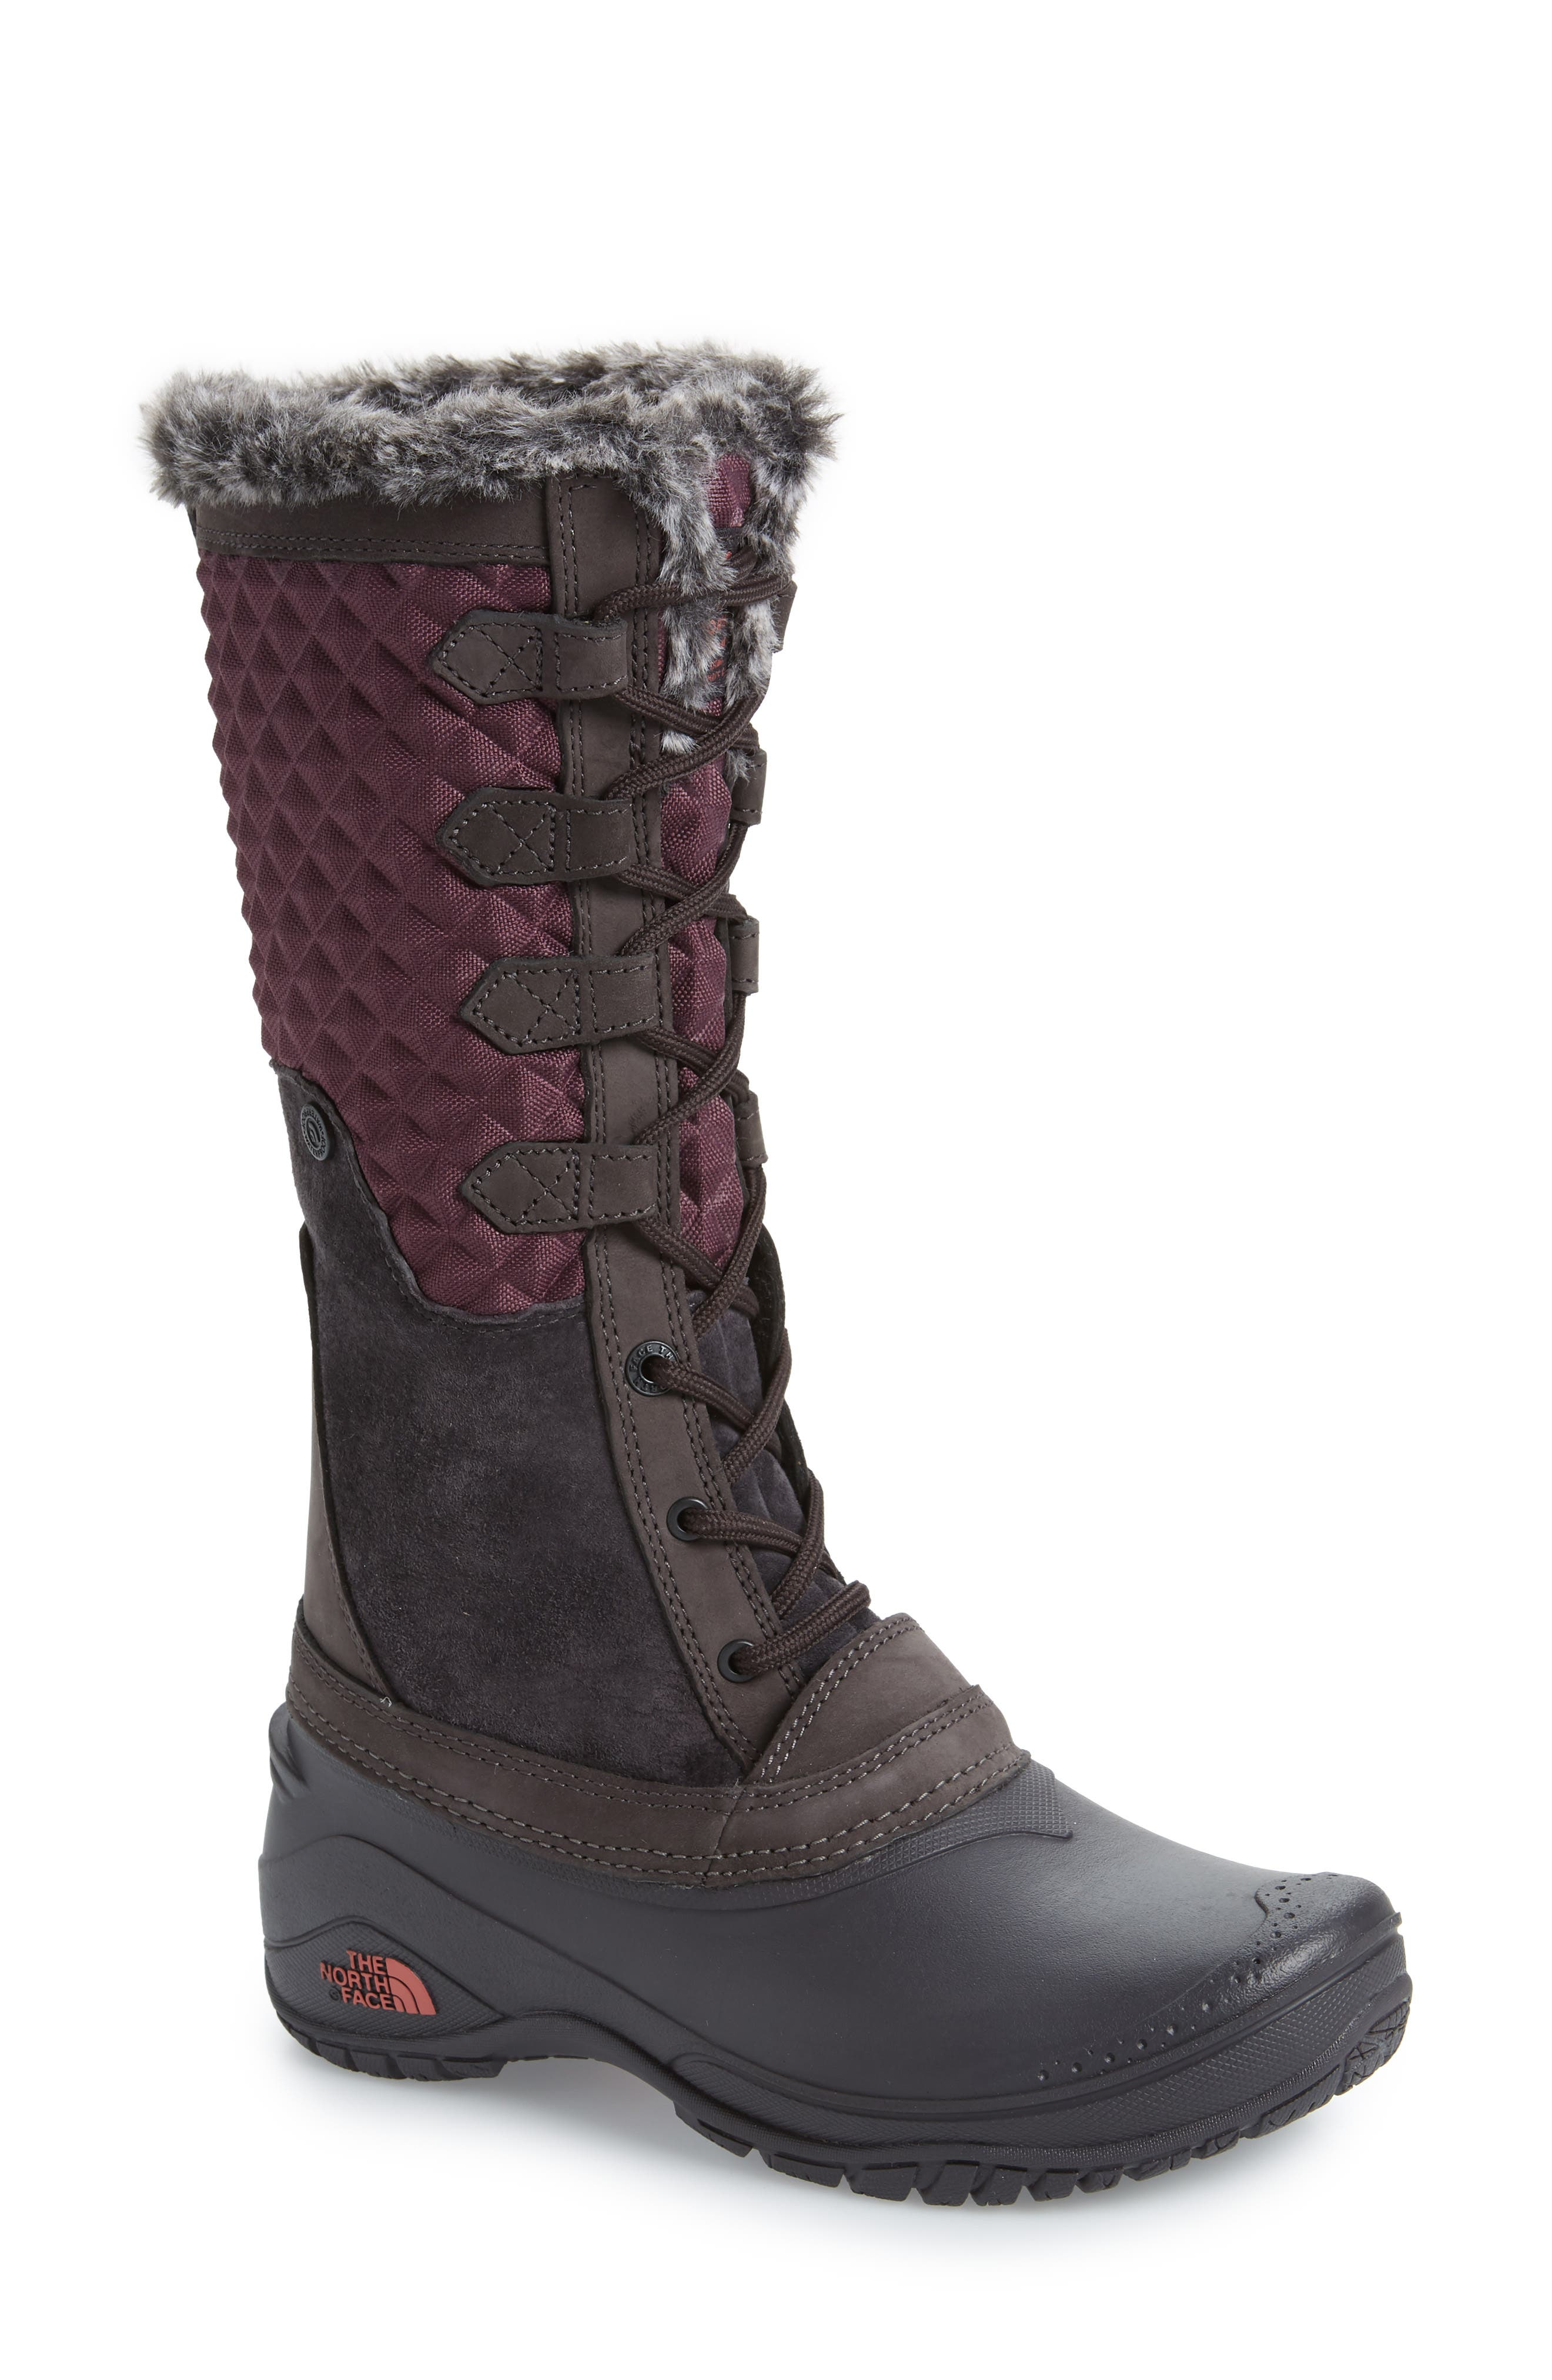 The North Face Shellista Iii Tall Waterproof Insulated Winter Boot, Burgundy